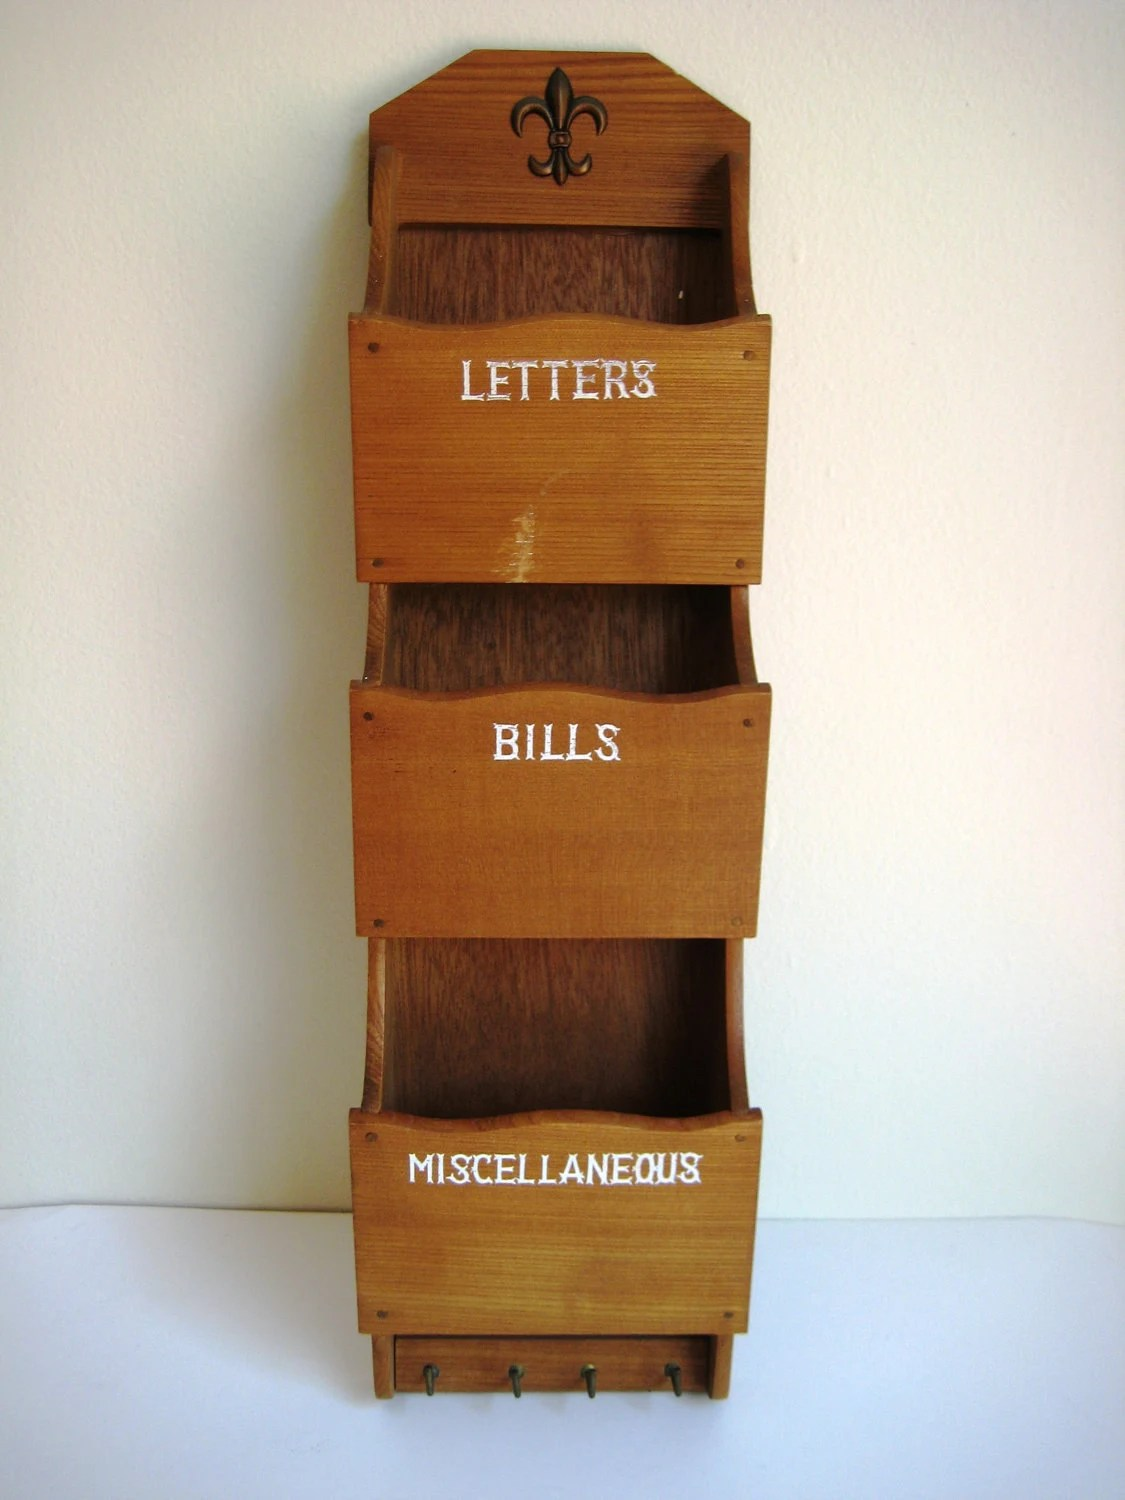 Hanging Mail And Key Organizer Vintage Hanging Mail Organizer Letters Bills Misc With Key